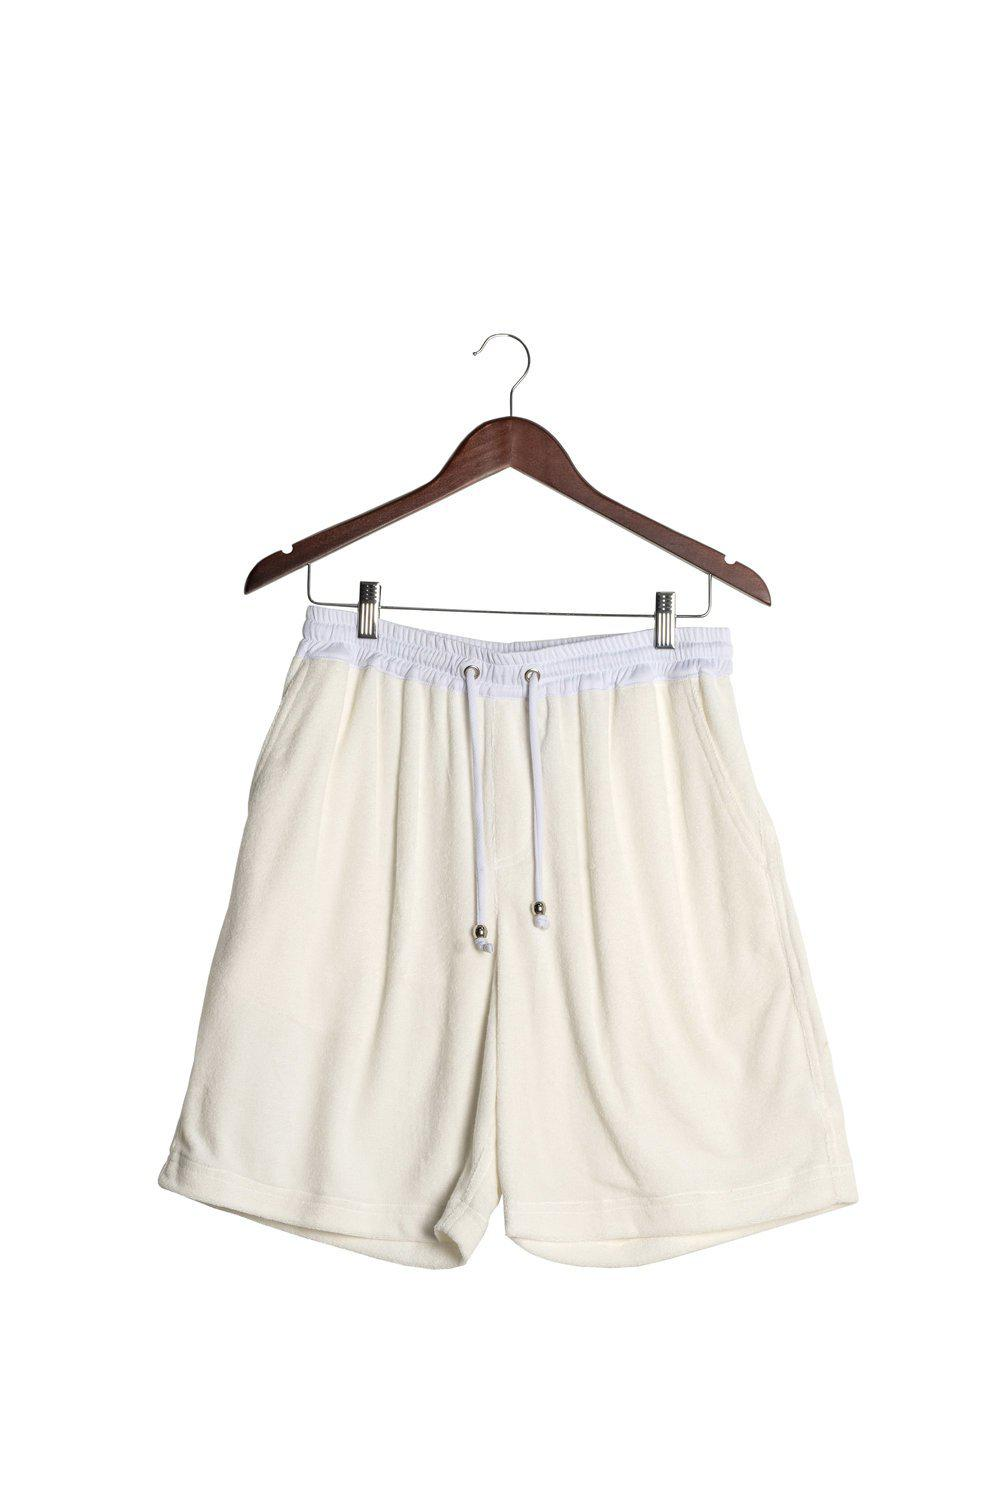 Travel Short / White | L'esure | Mad About The Boy